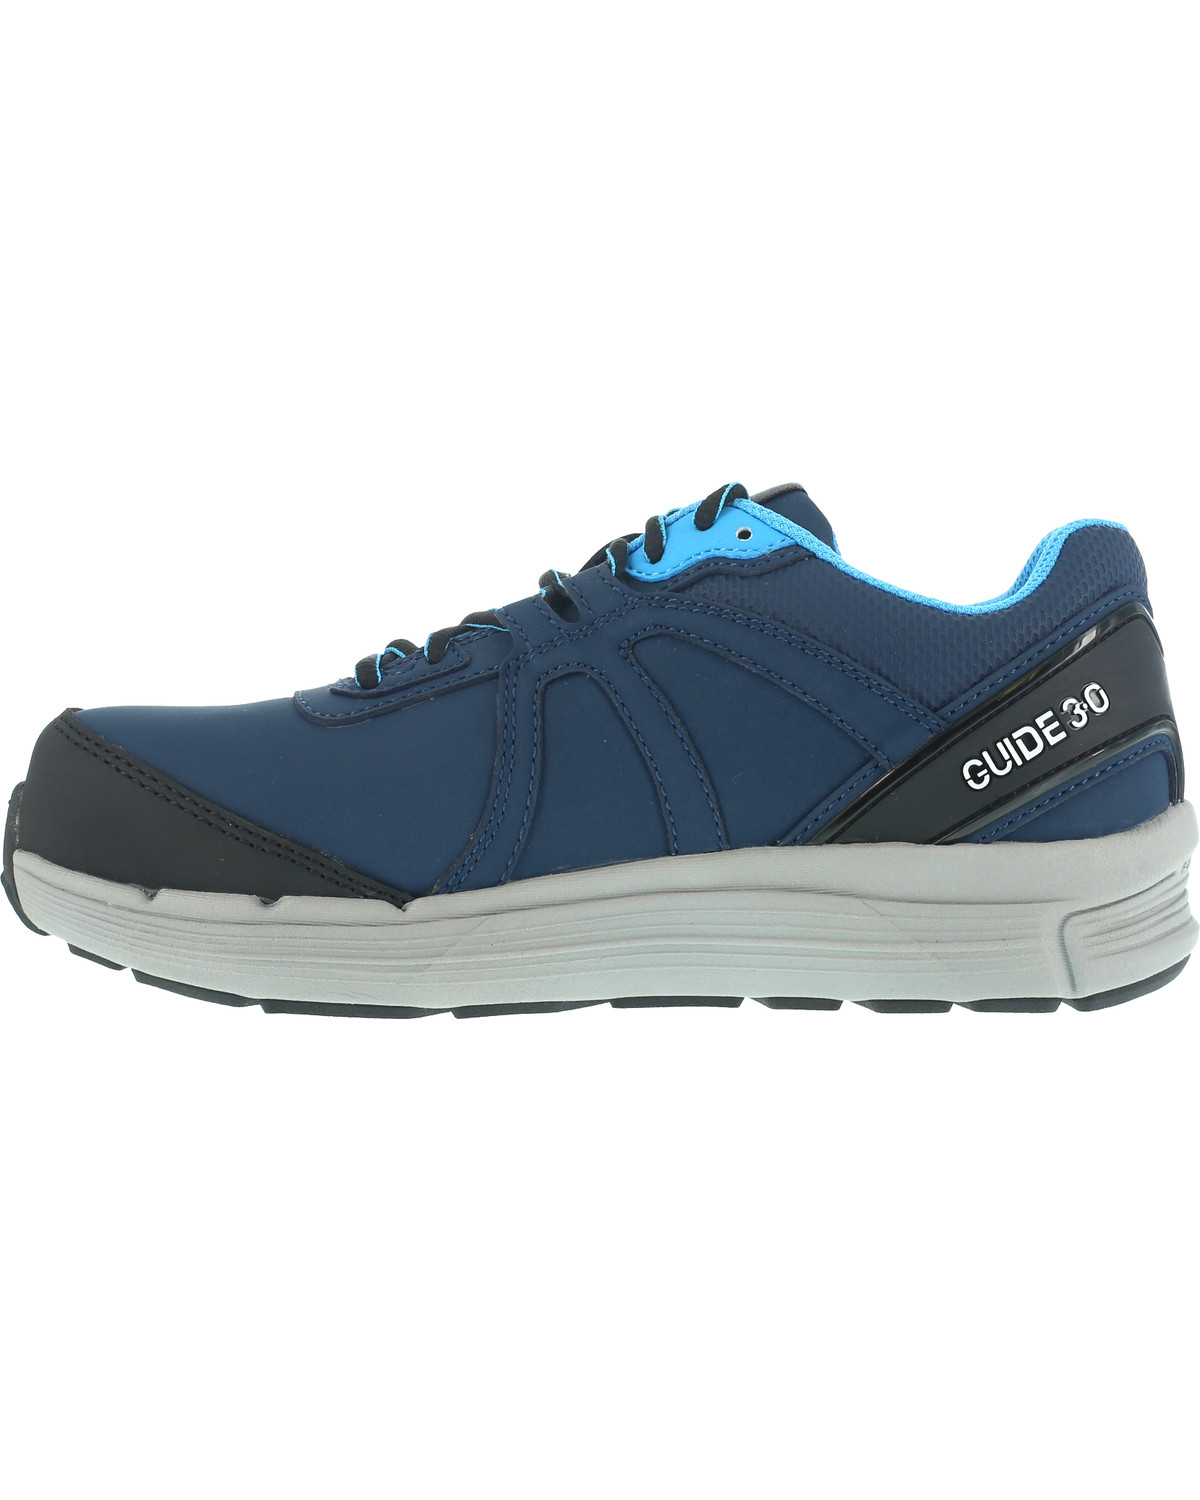 8f22c88dcbc Reebok Women s Guide Athletic Oxford Work Shoes - Steel Toe